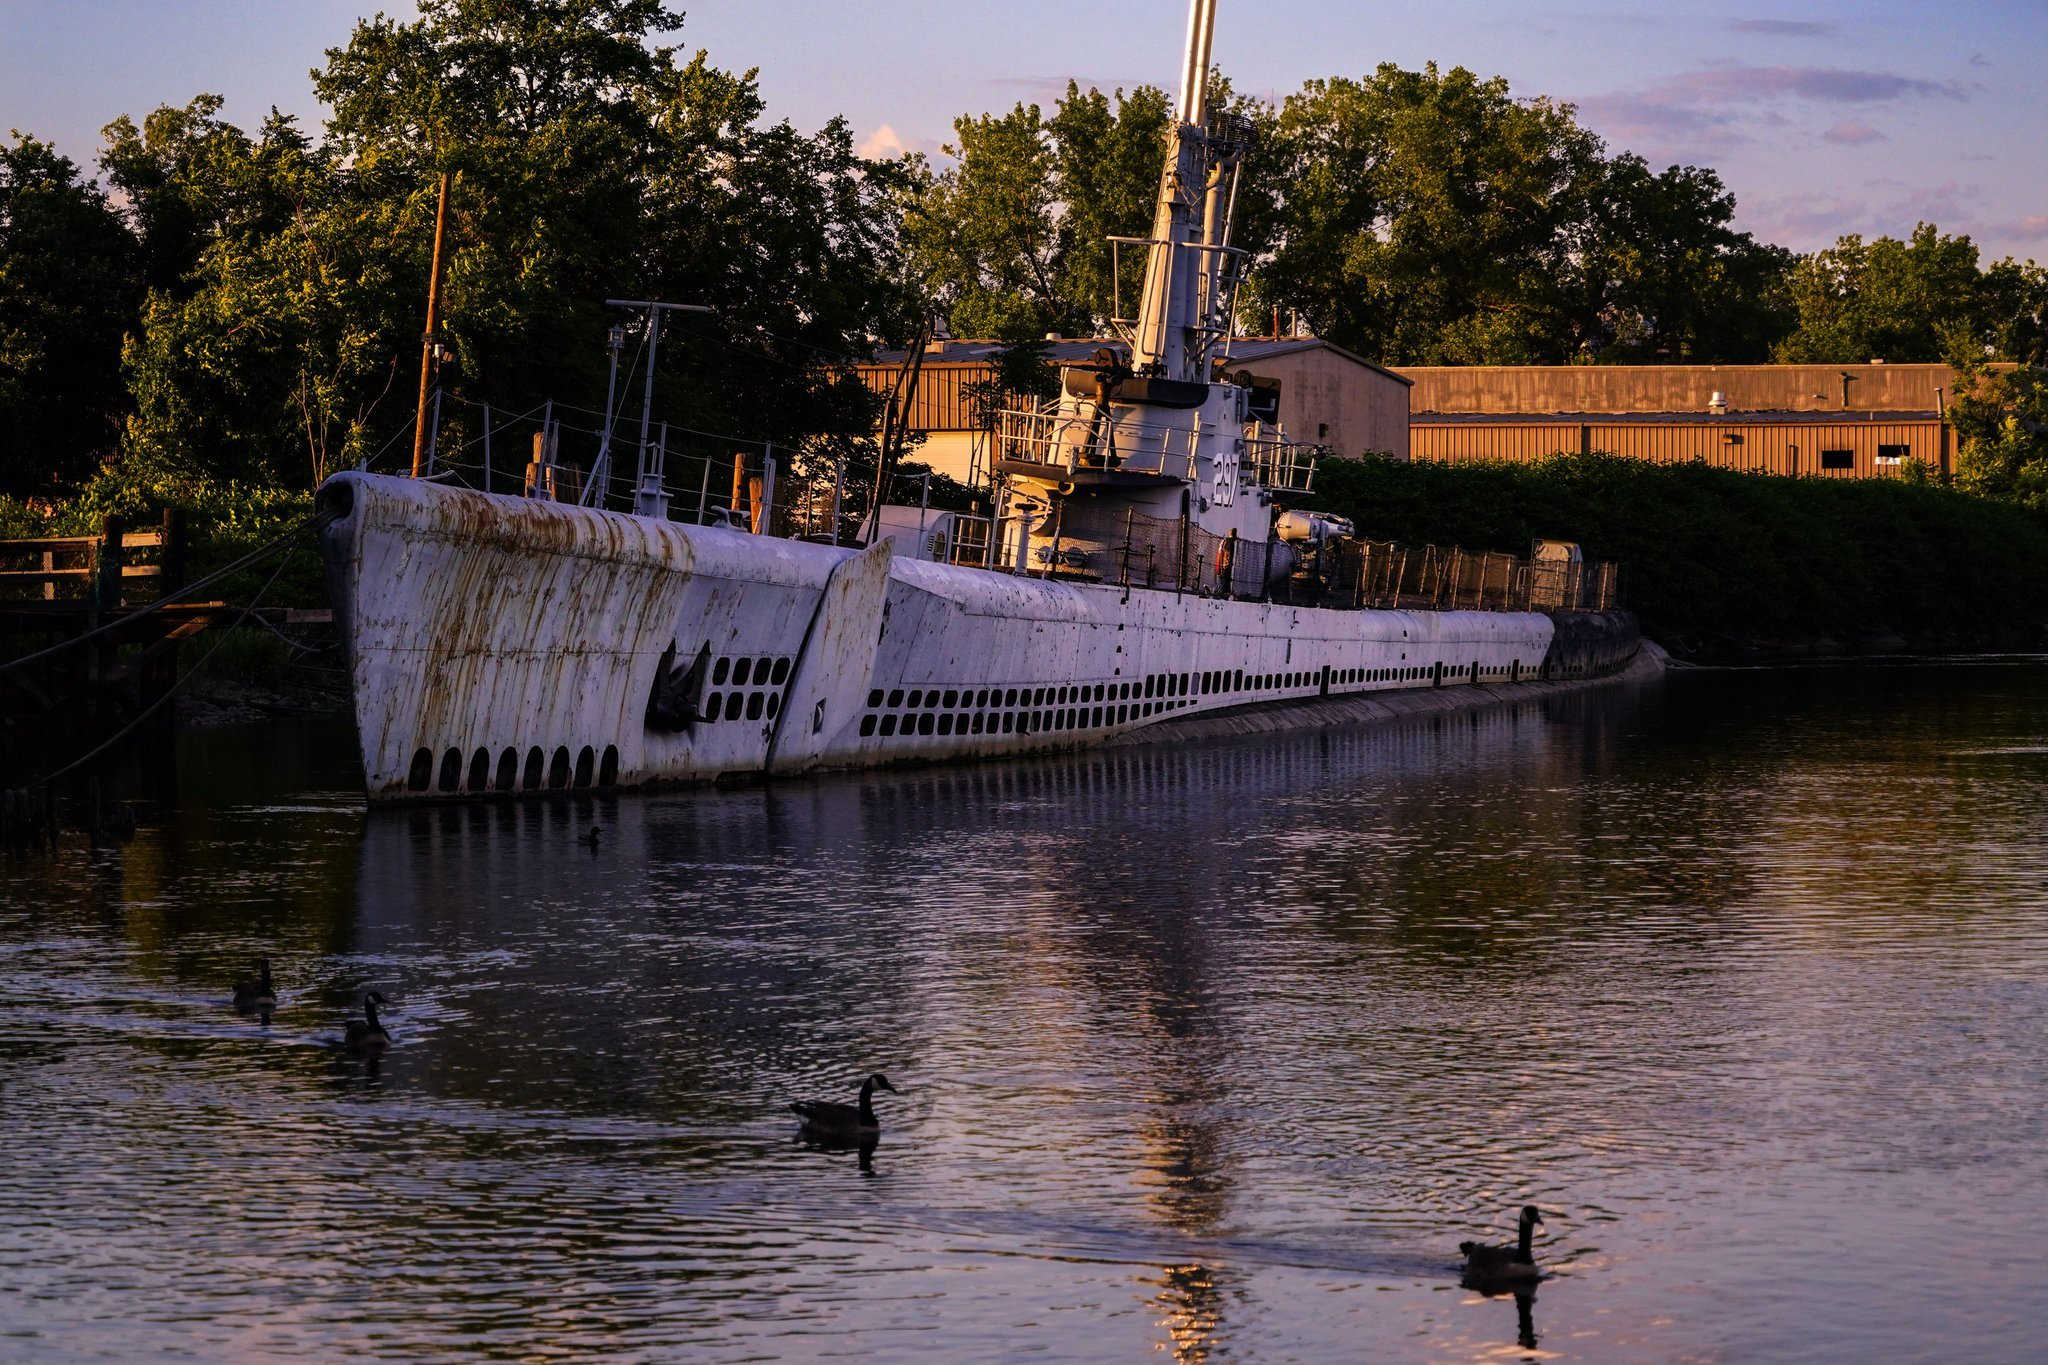 The Ling in its current condition, from a 2017 NY Times article. With the Hackensack River silted up from a nearby dam, the submarine is now grounded on the riverbottom. A dredging operation required to extract it is too expensive for present funds.